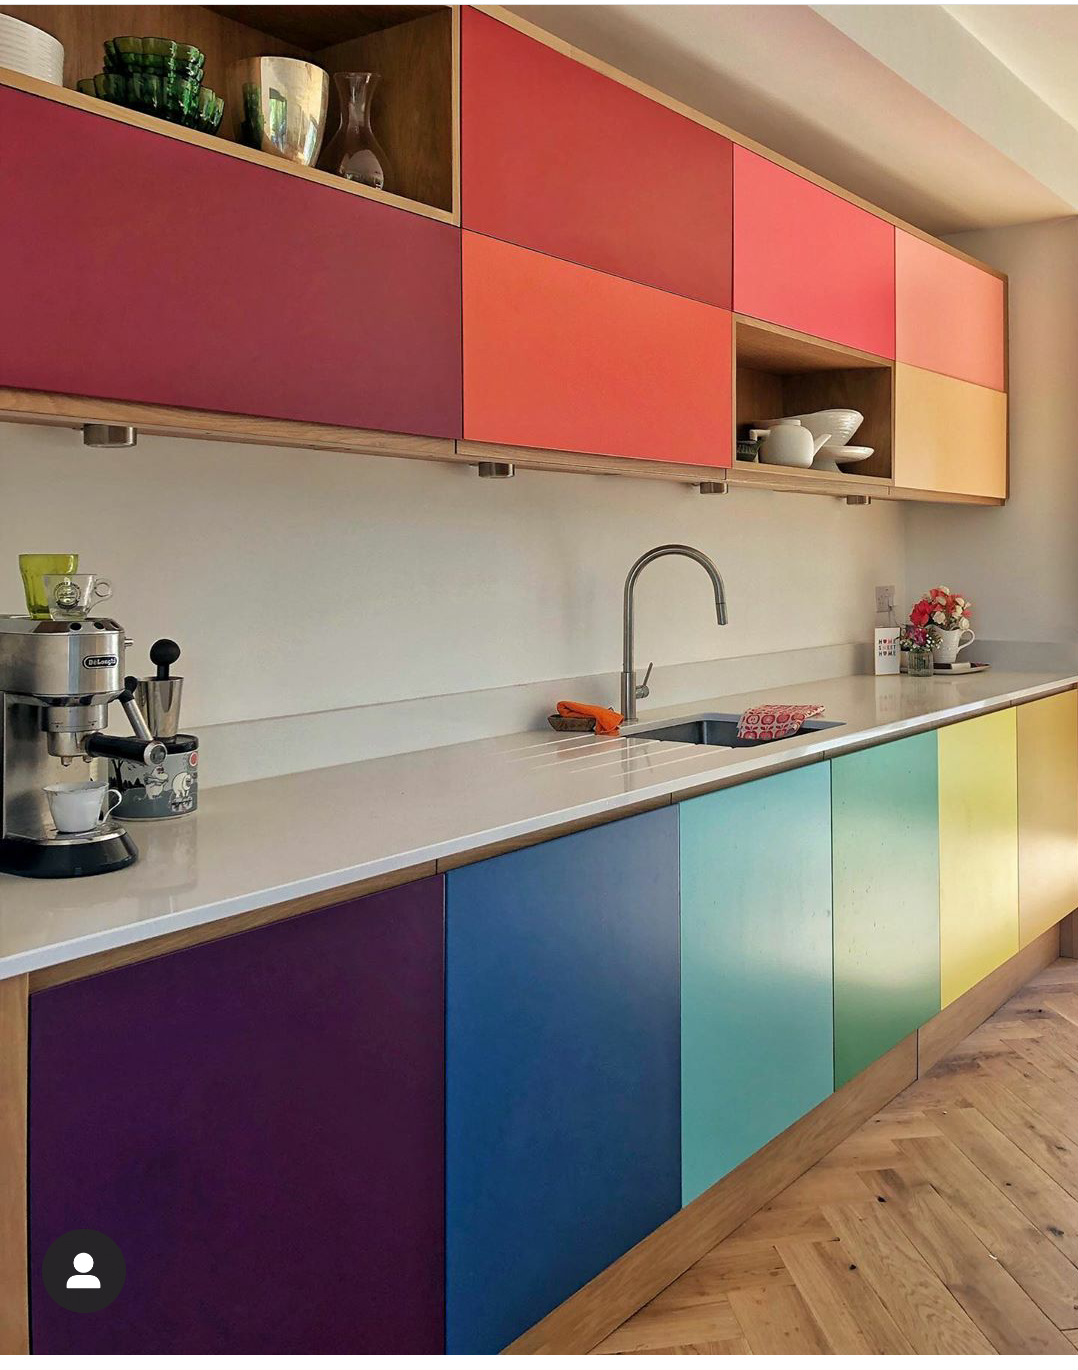 The fabulous kitchen in the home of illustrator jennie maizels. Made by John Lewis of Hungerford, Jenny chose all her cupboard colours